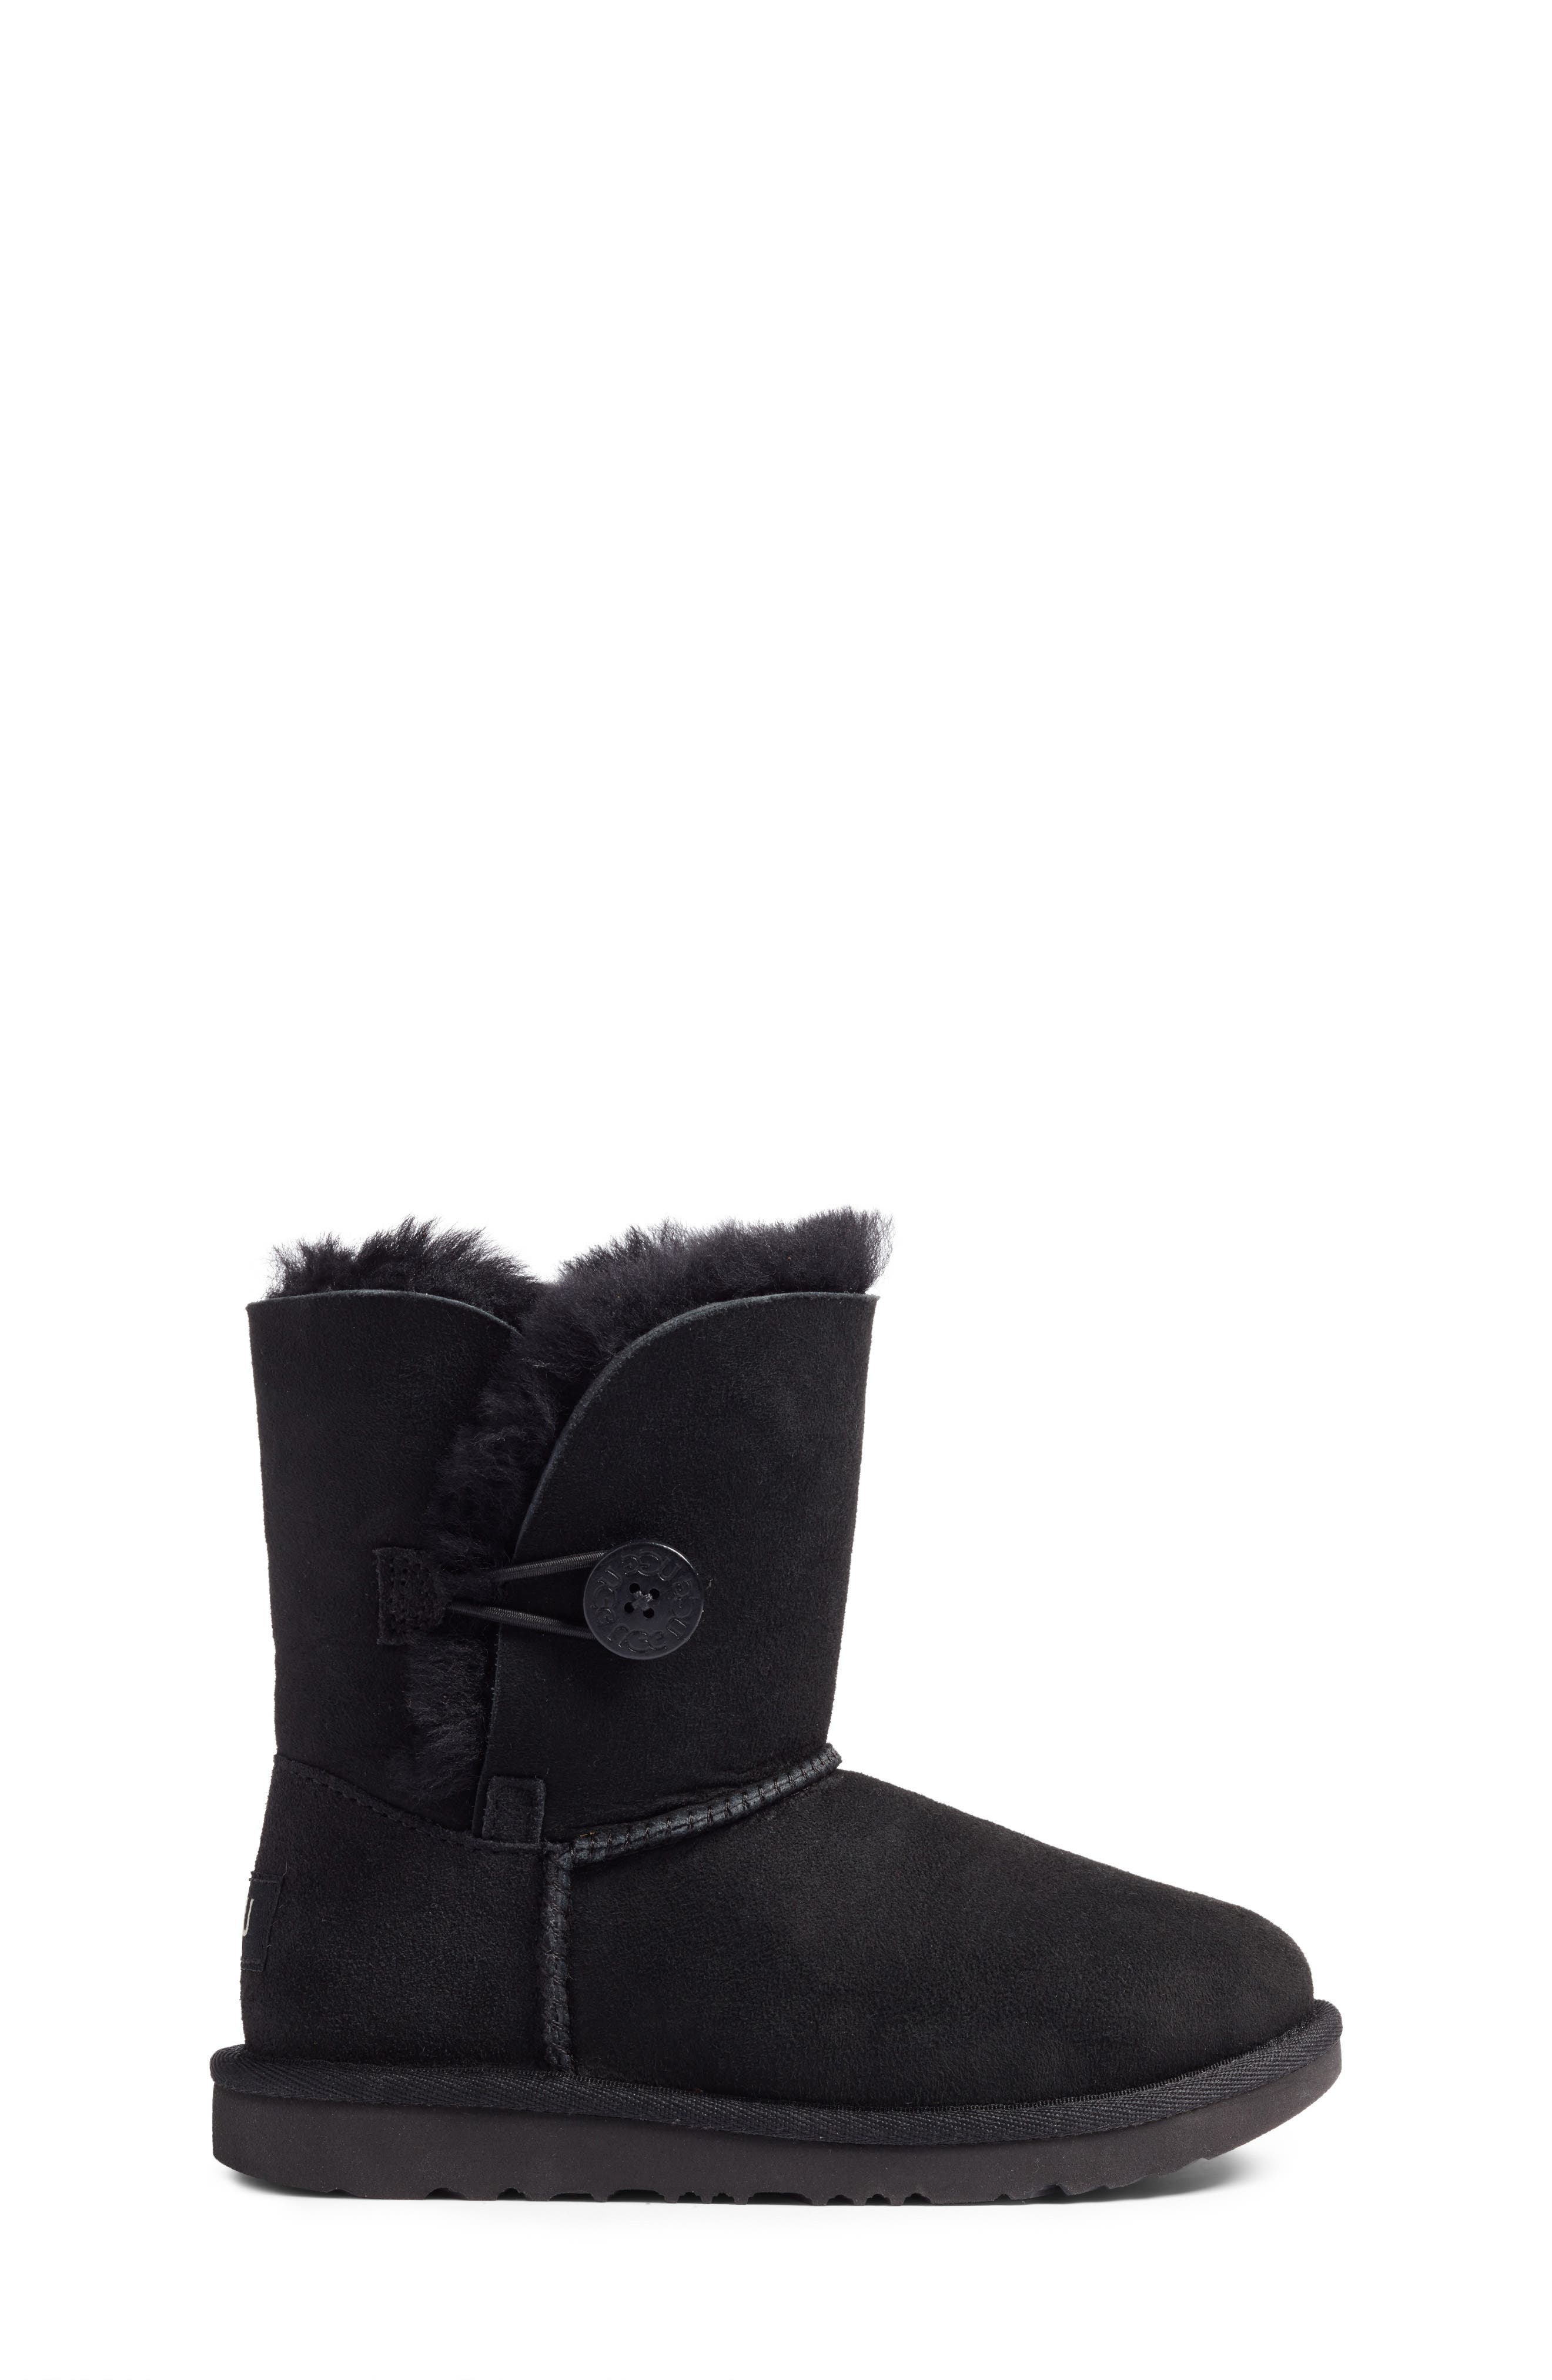 UGG<SUP>®</SUP>, Bailey Button II Water Resistant Genuine Shearling Boot, Alternate thumbnail 3, color, BLACK SUEDE